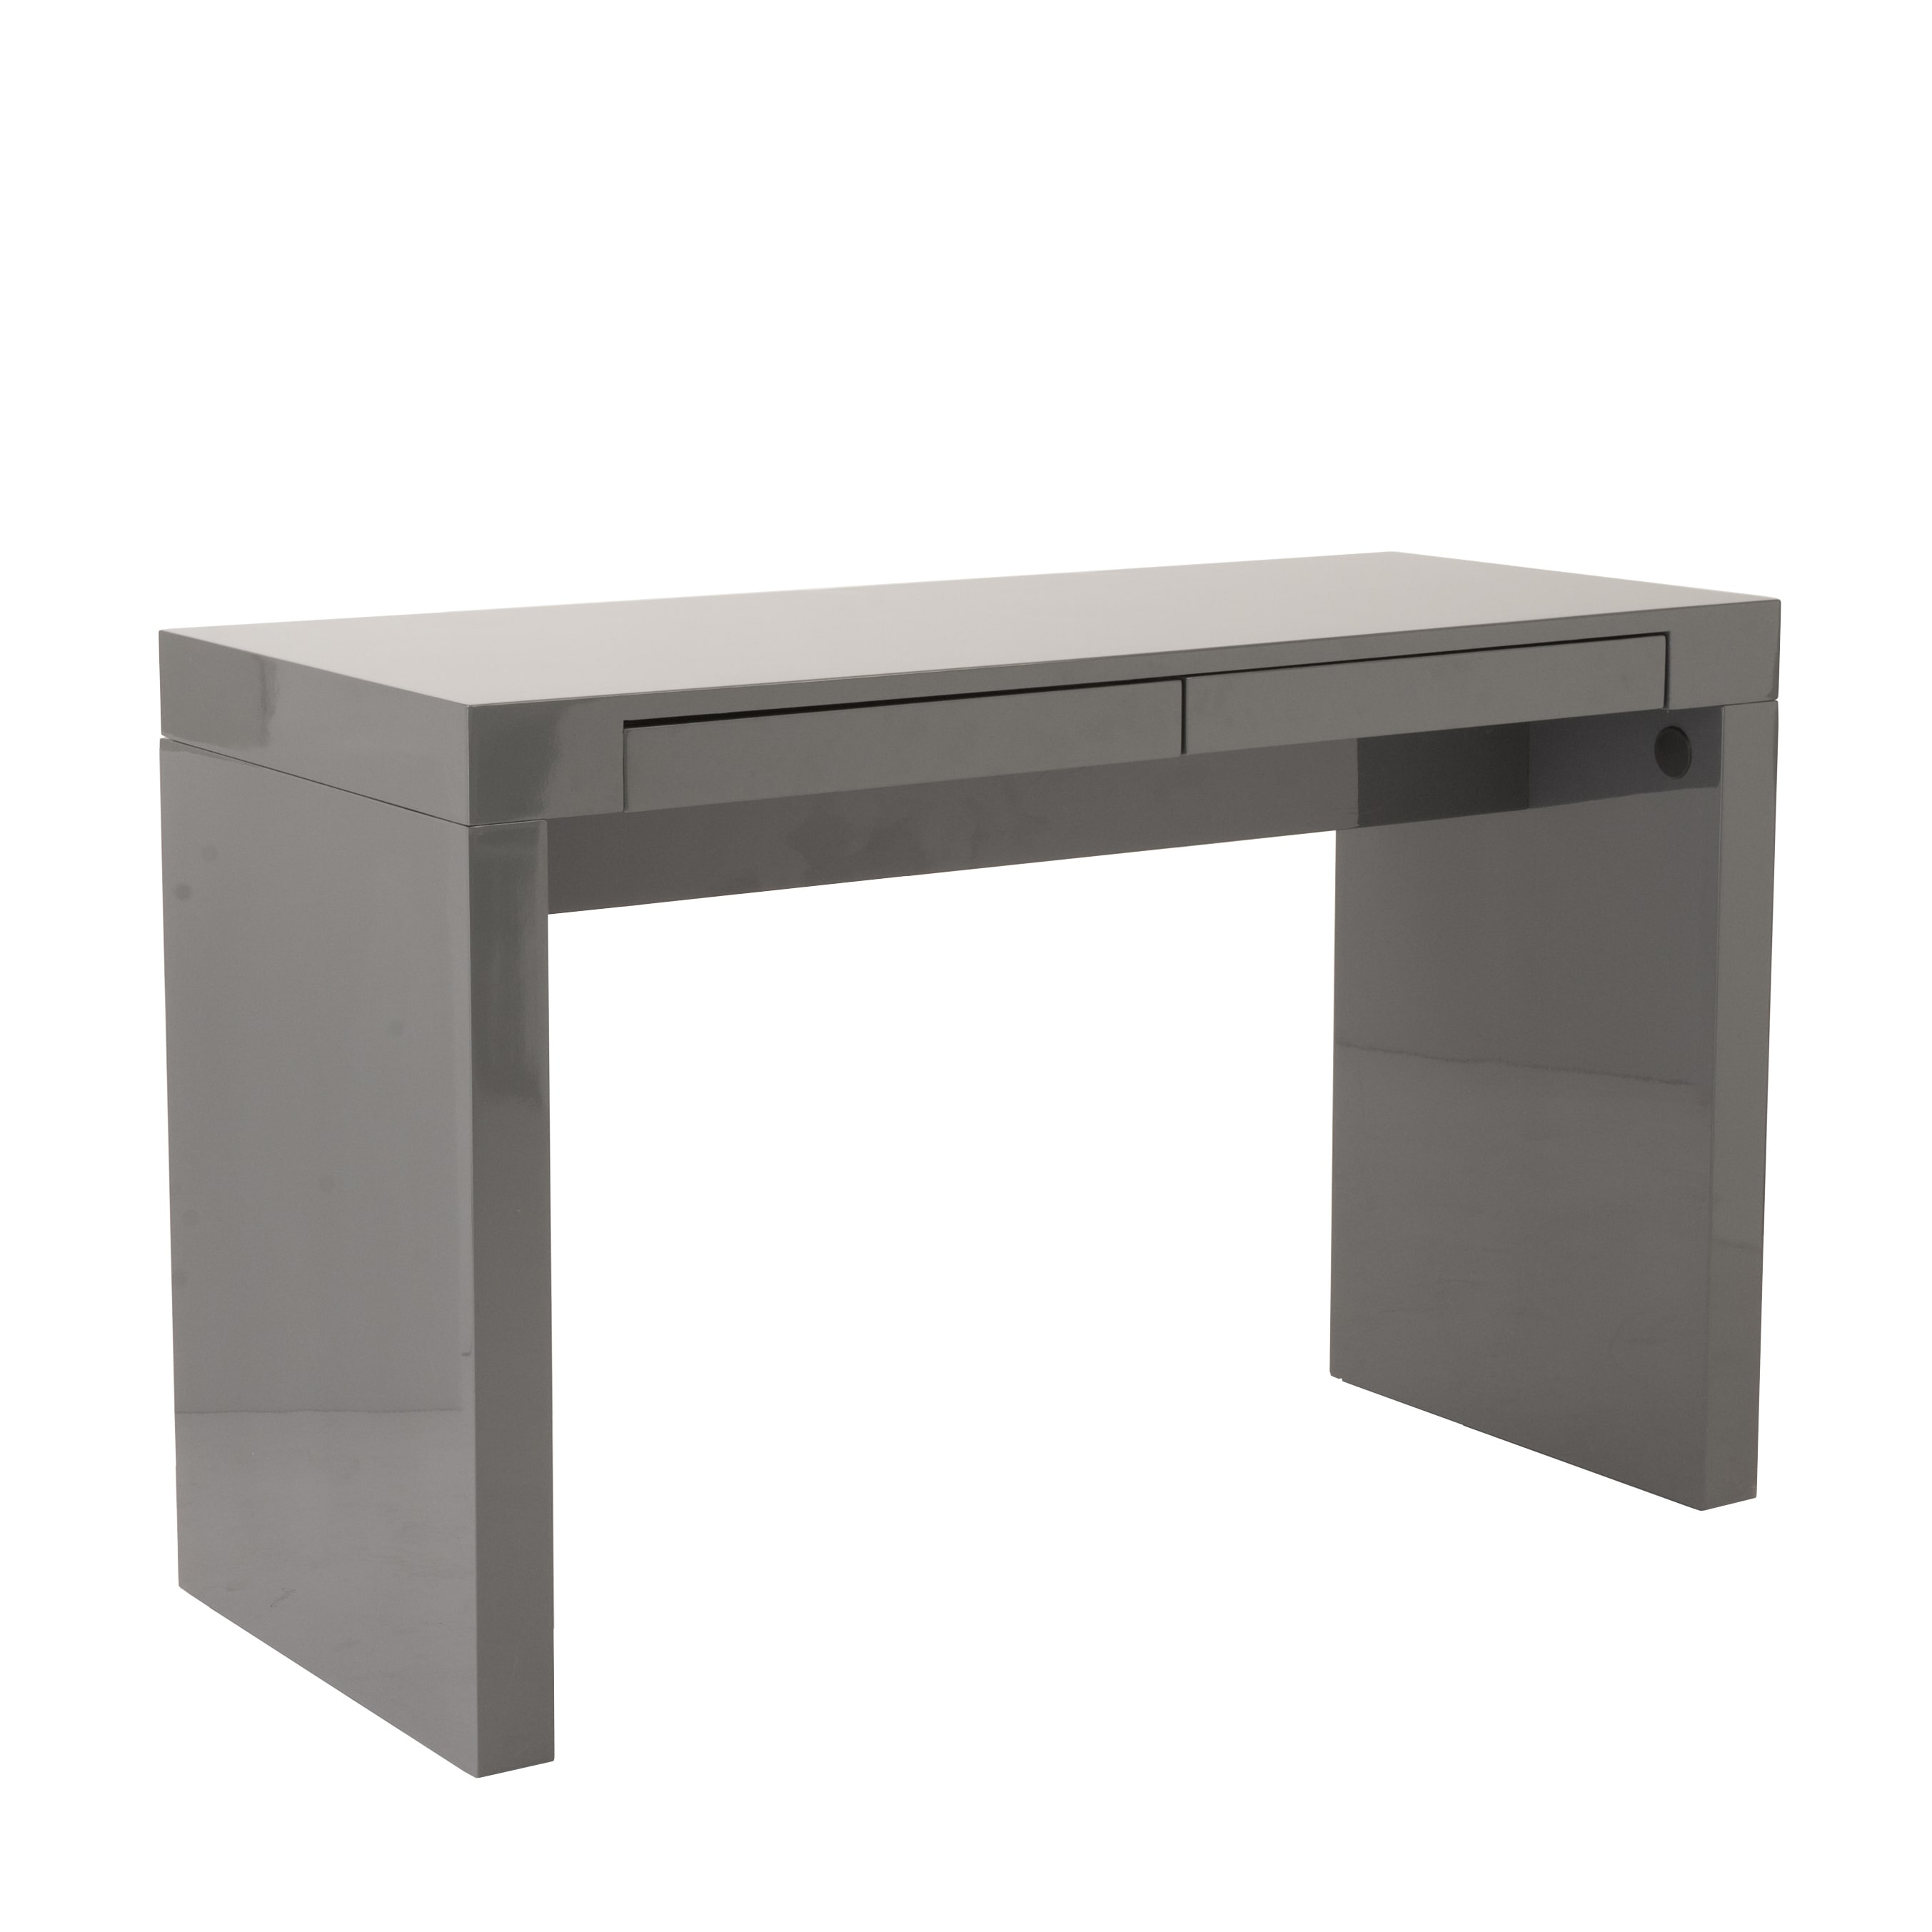 flair l most office computer table grey white gray desk writing shaped corner skookum